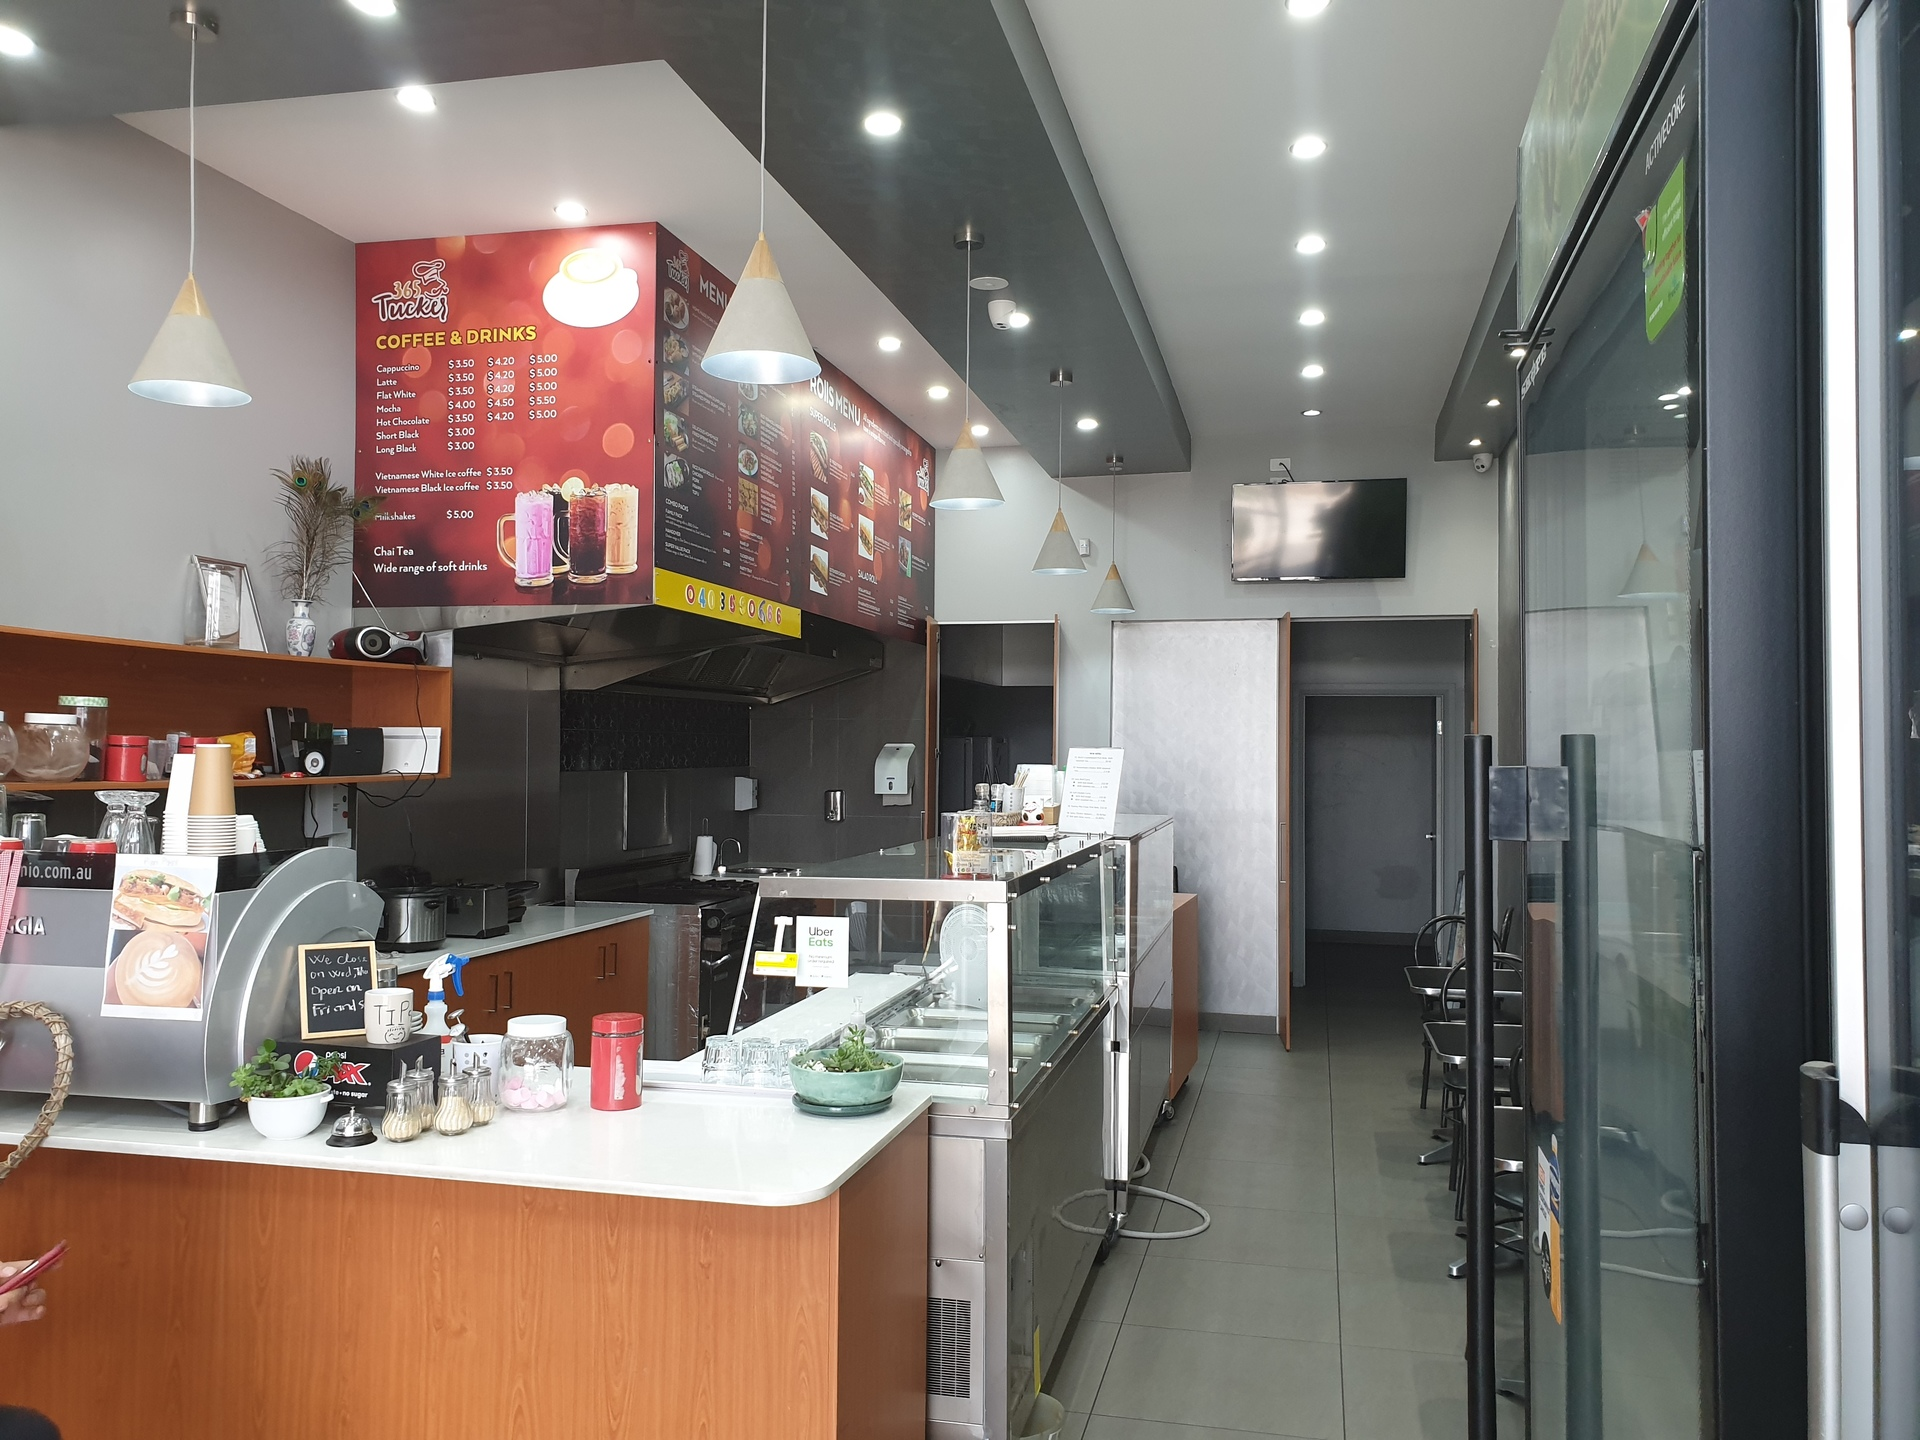 Sunshine - Industrial Cafe takeaway - Cheap only $35,000